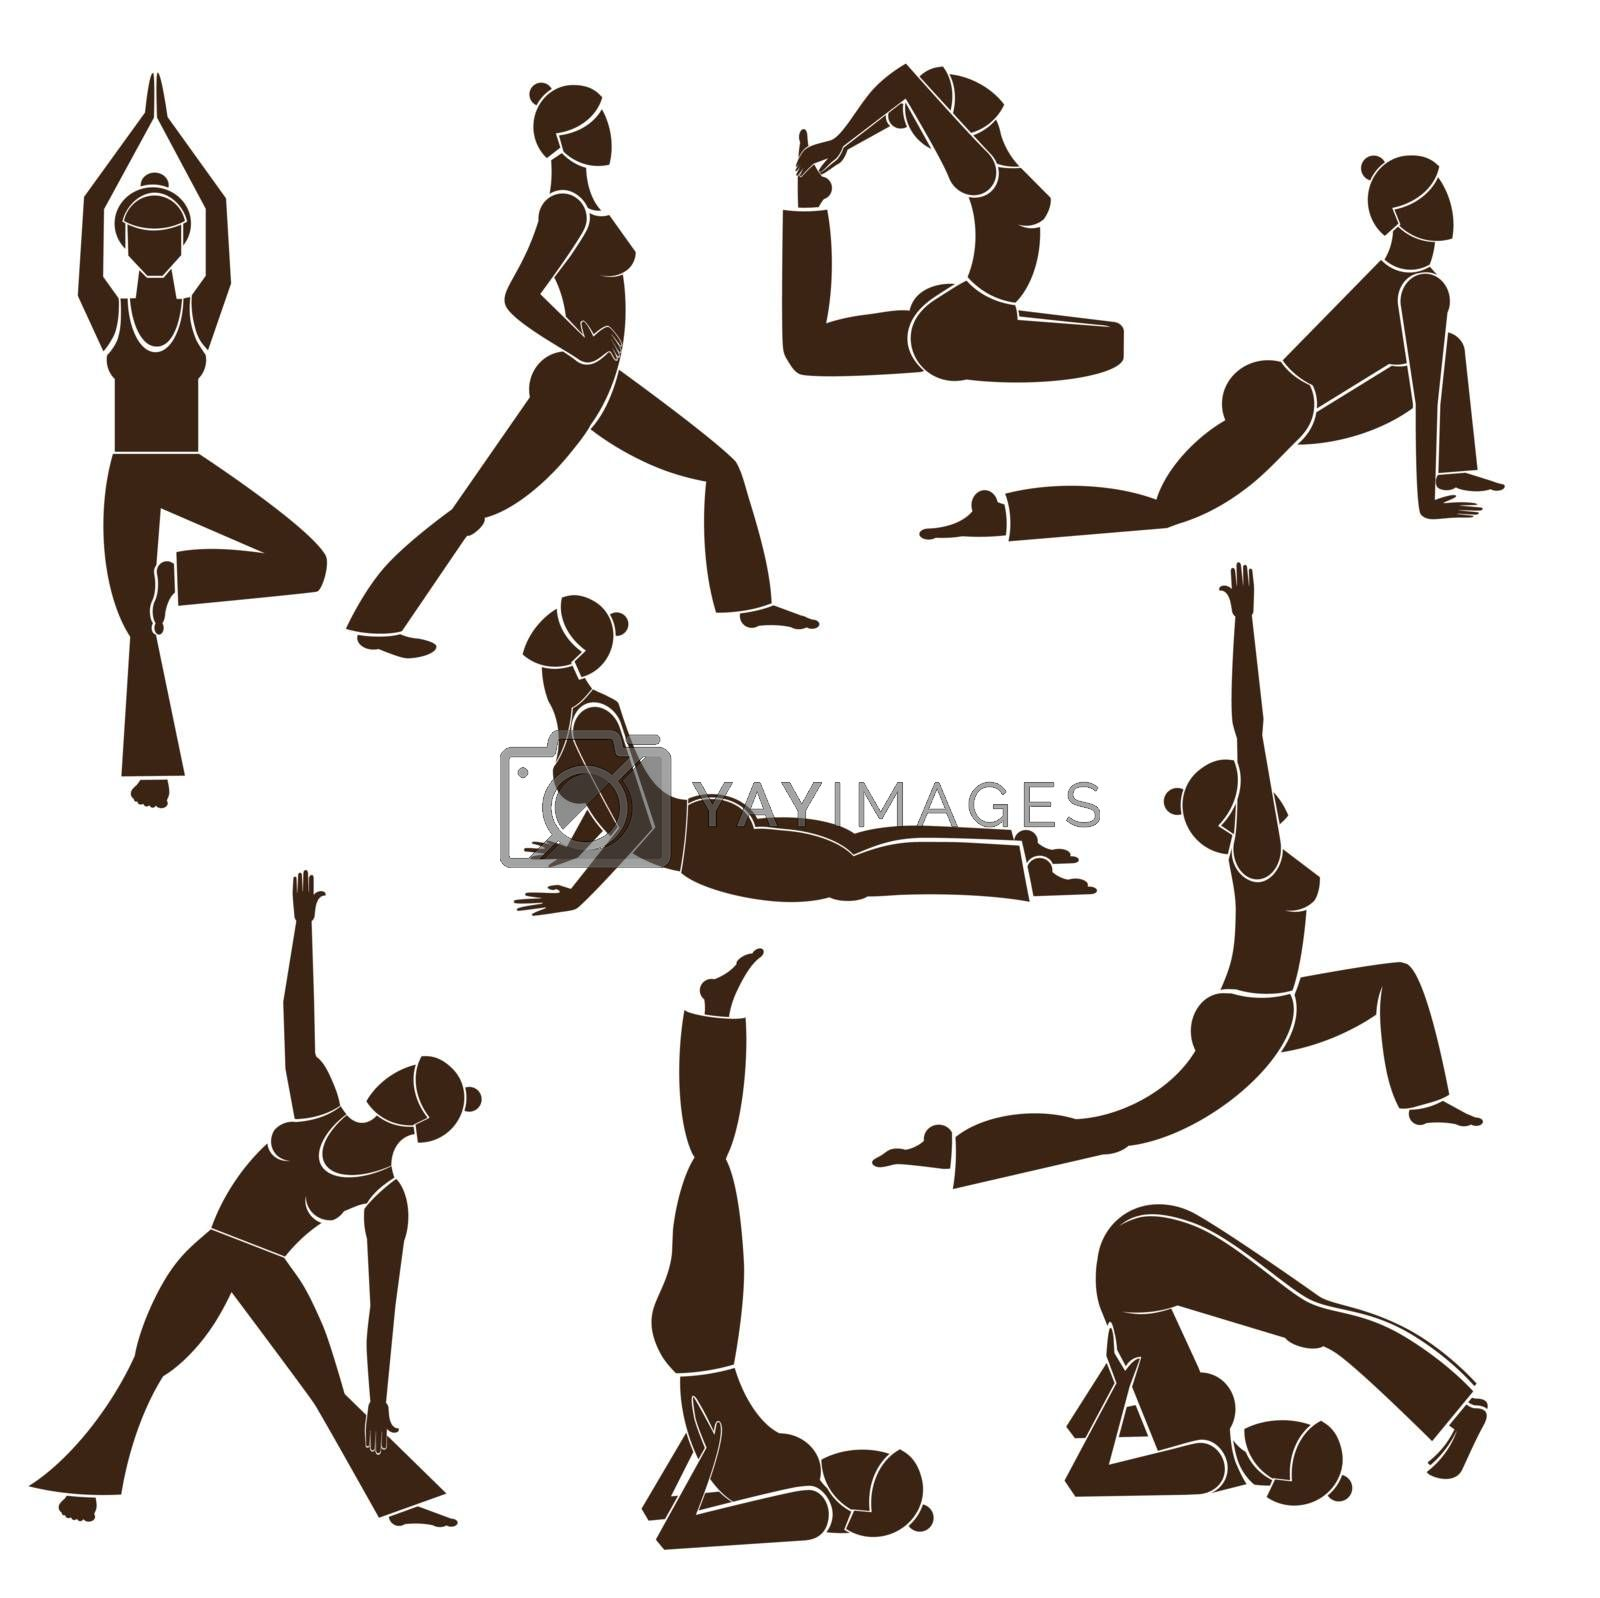 Women silhouettes representing different yoga poses